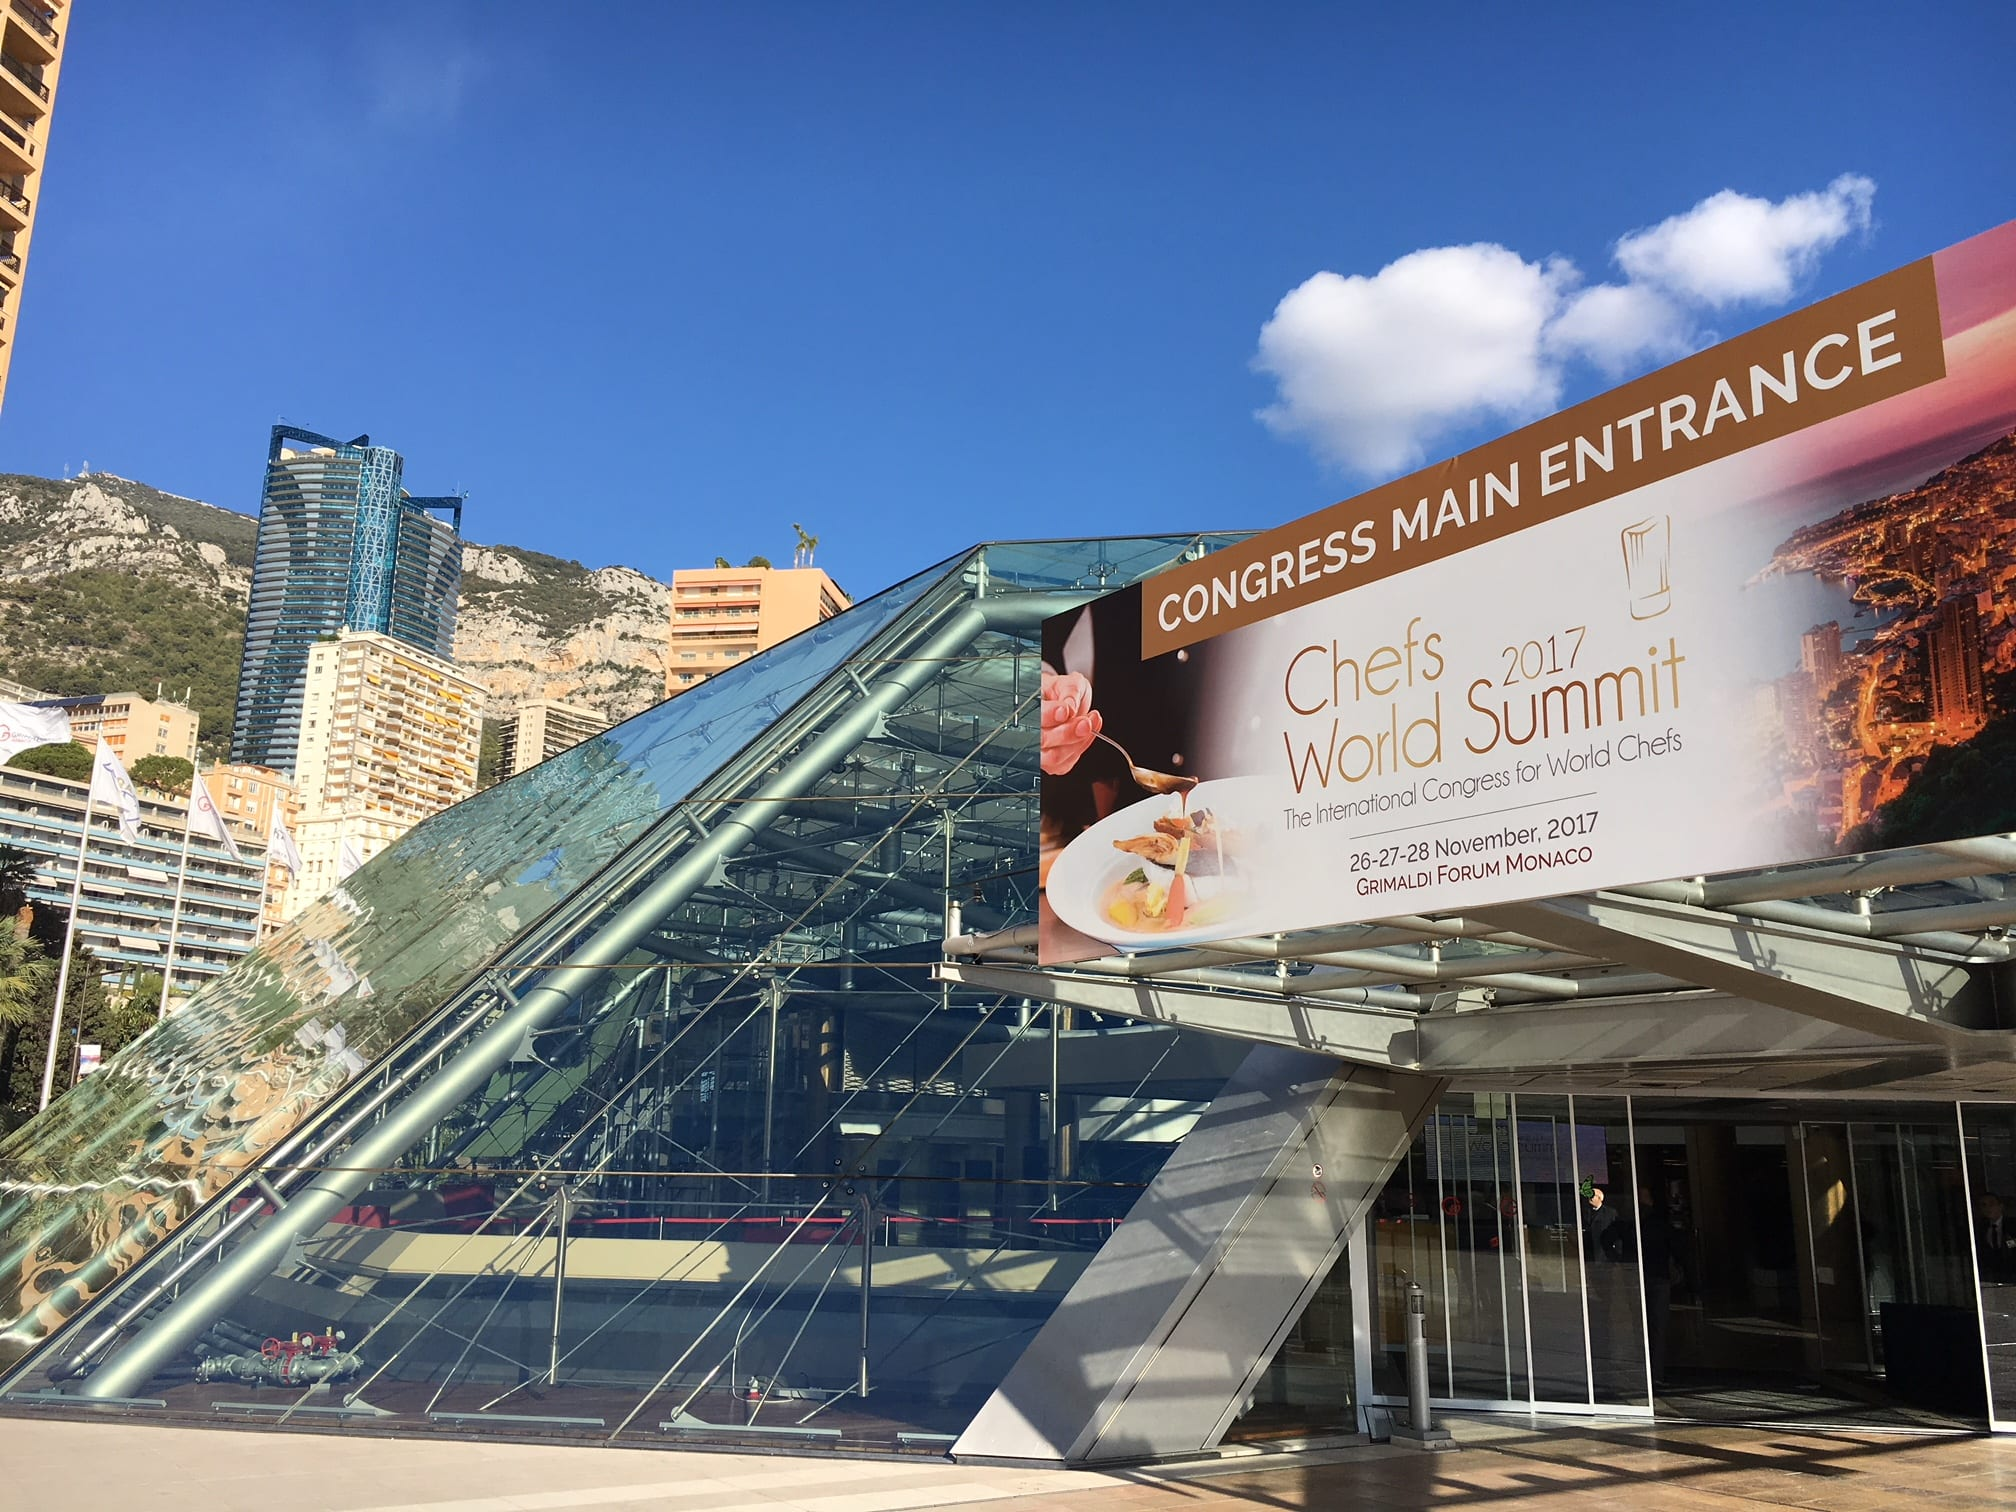 IMG 6874 Rochini meets Chefs World Summit 2017 in Monaco